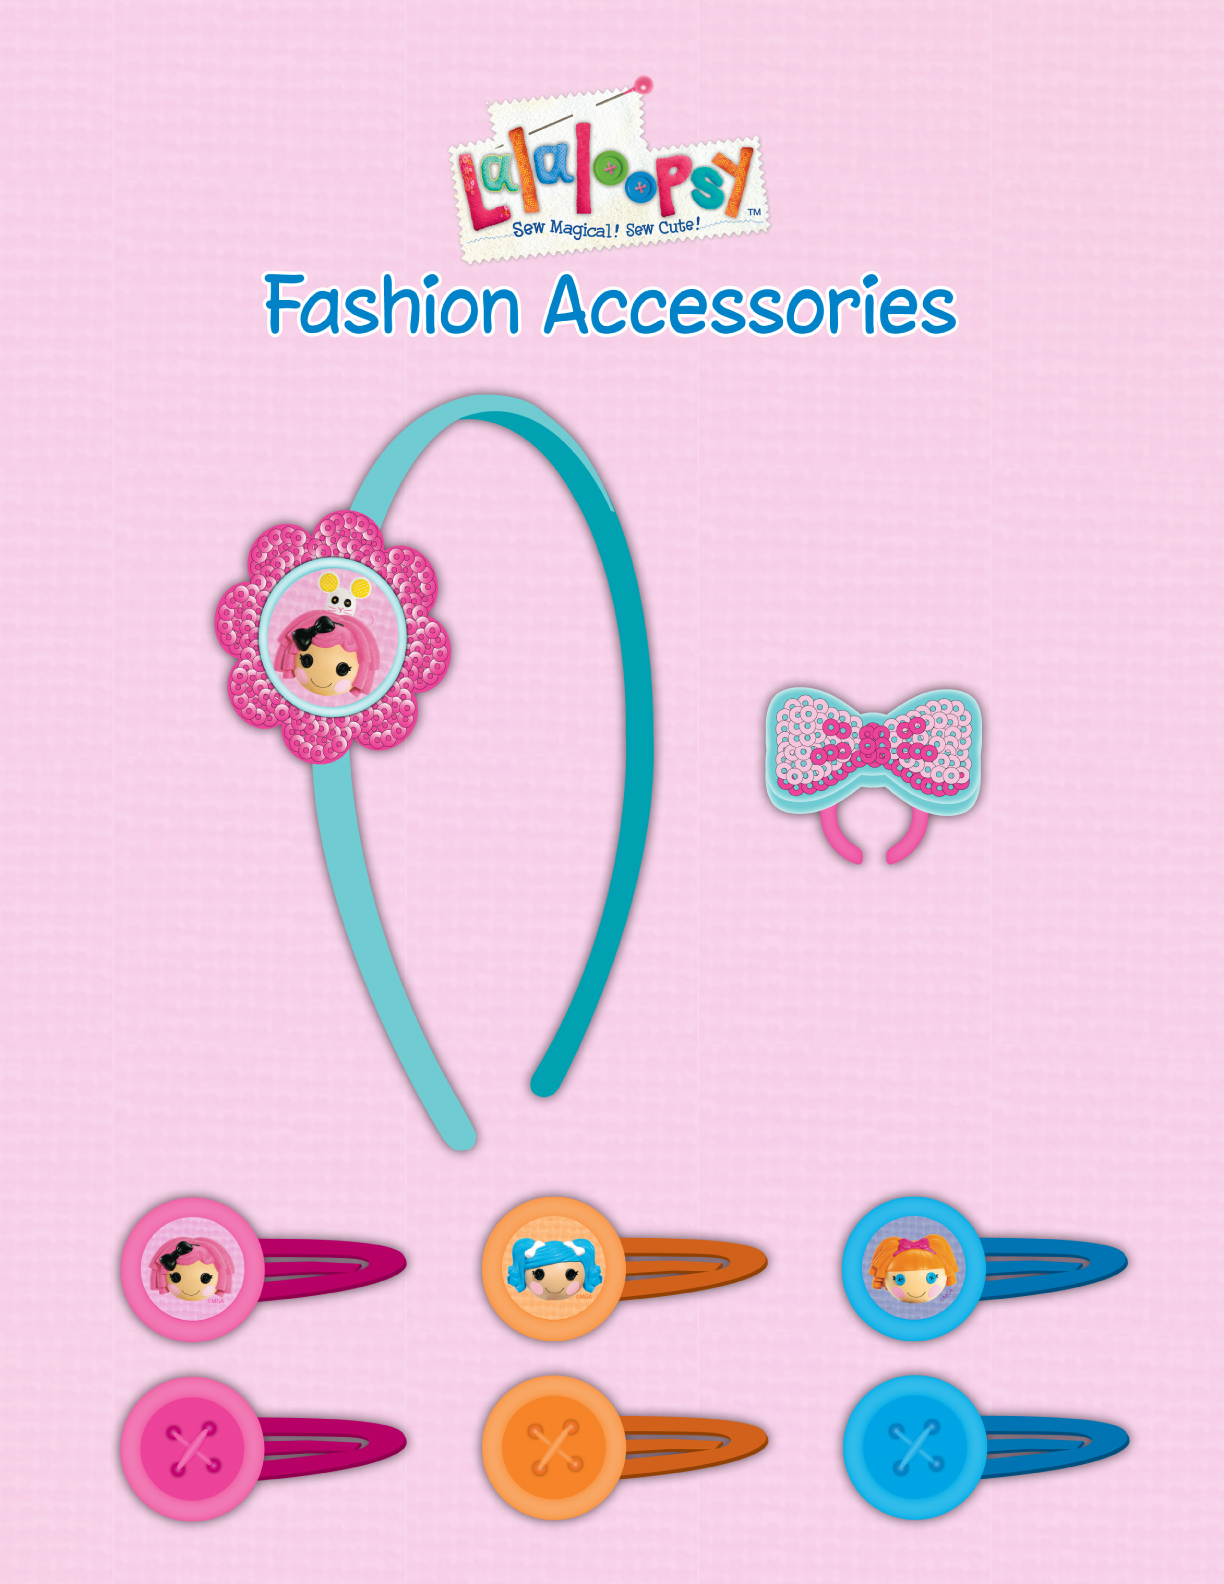 LpsyFshnAccessories